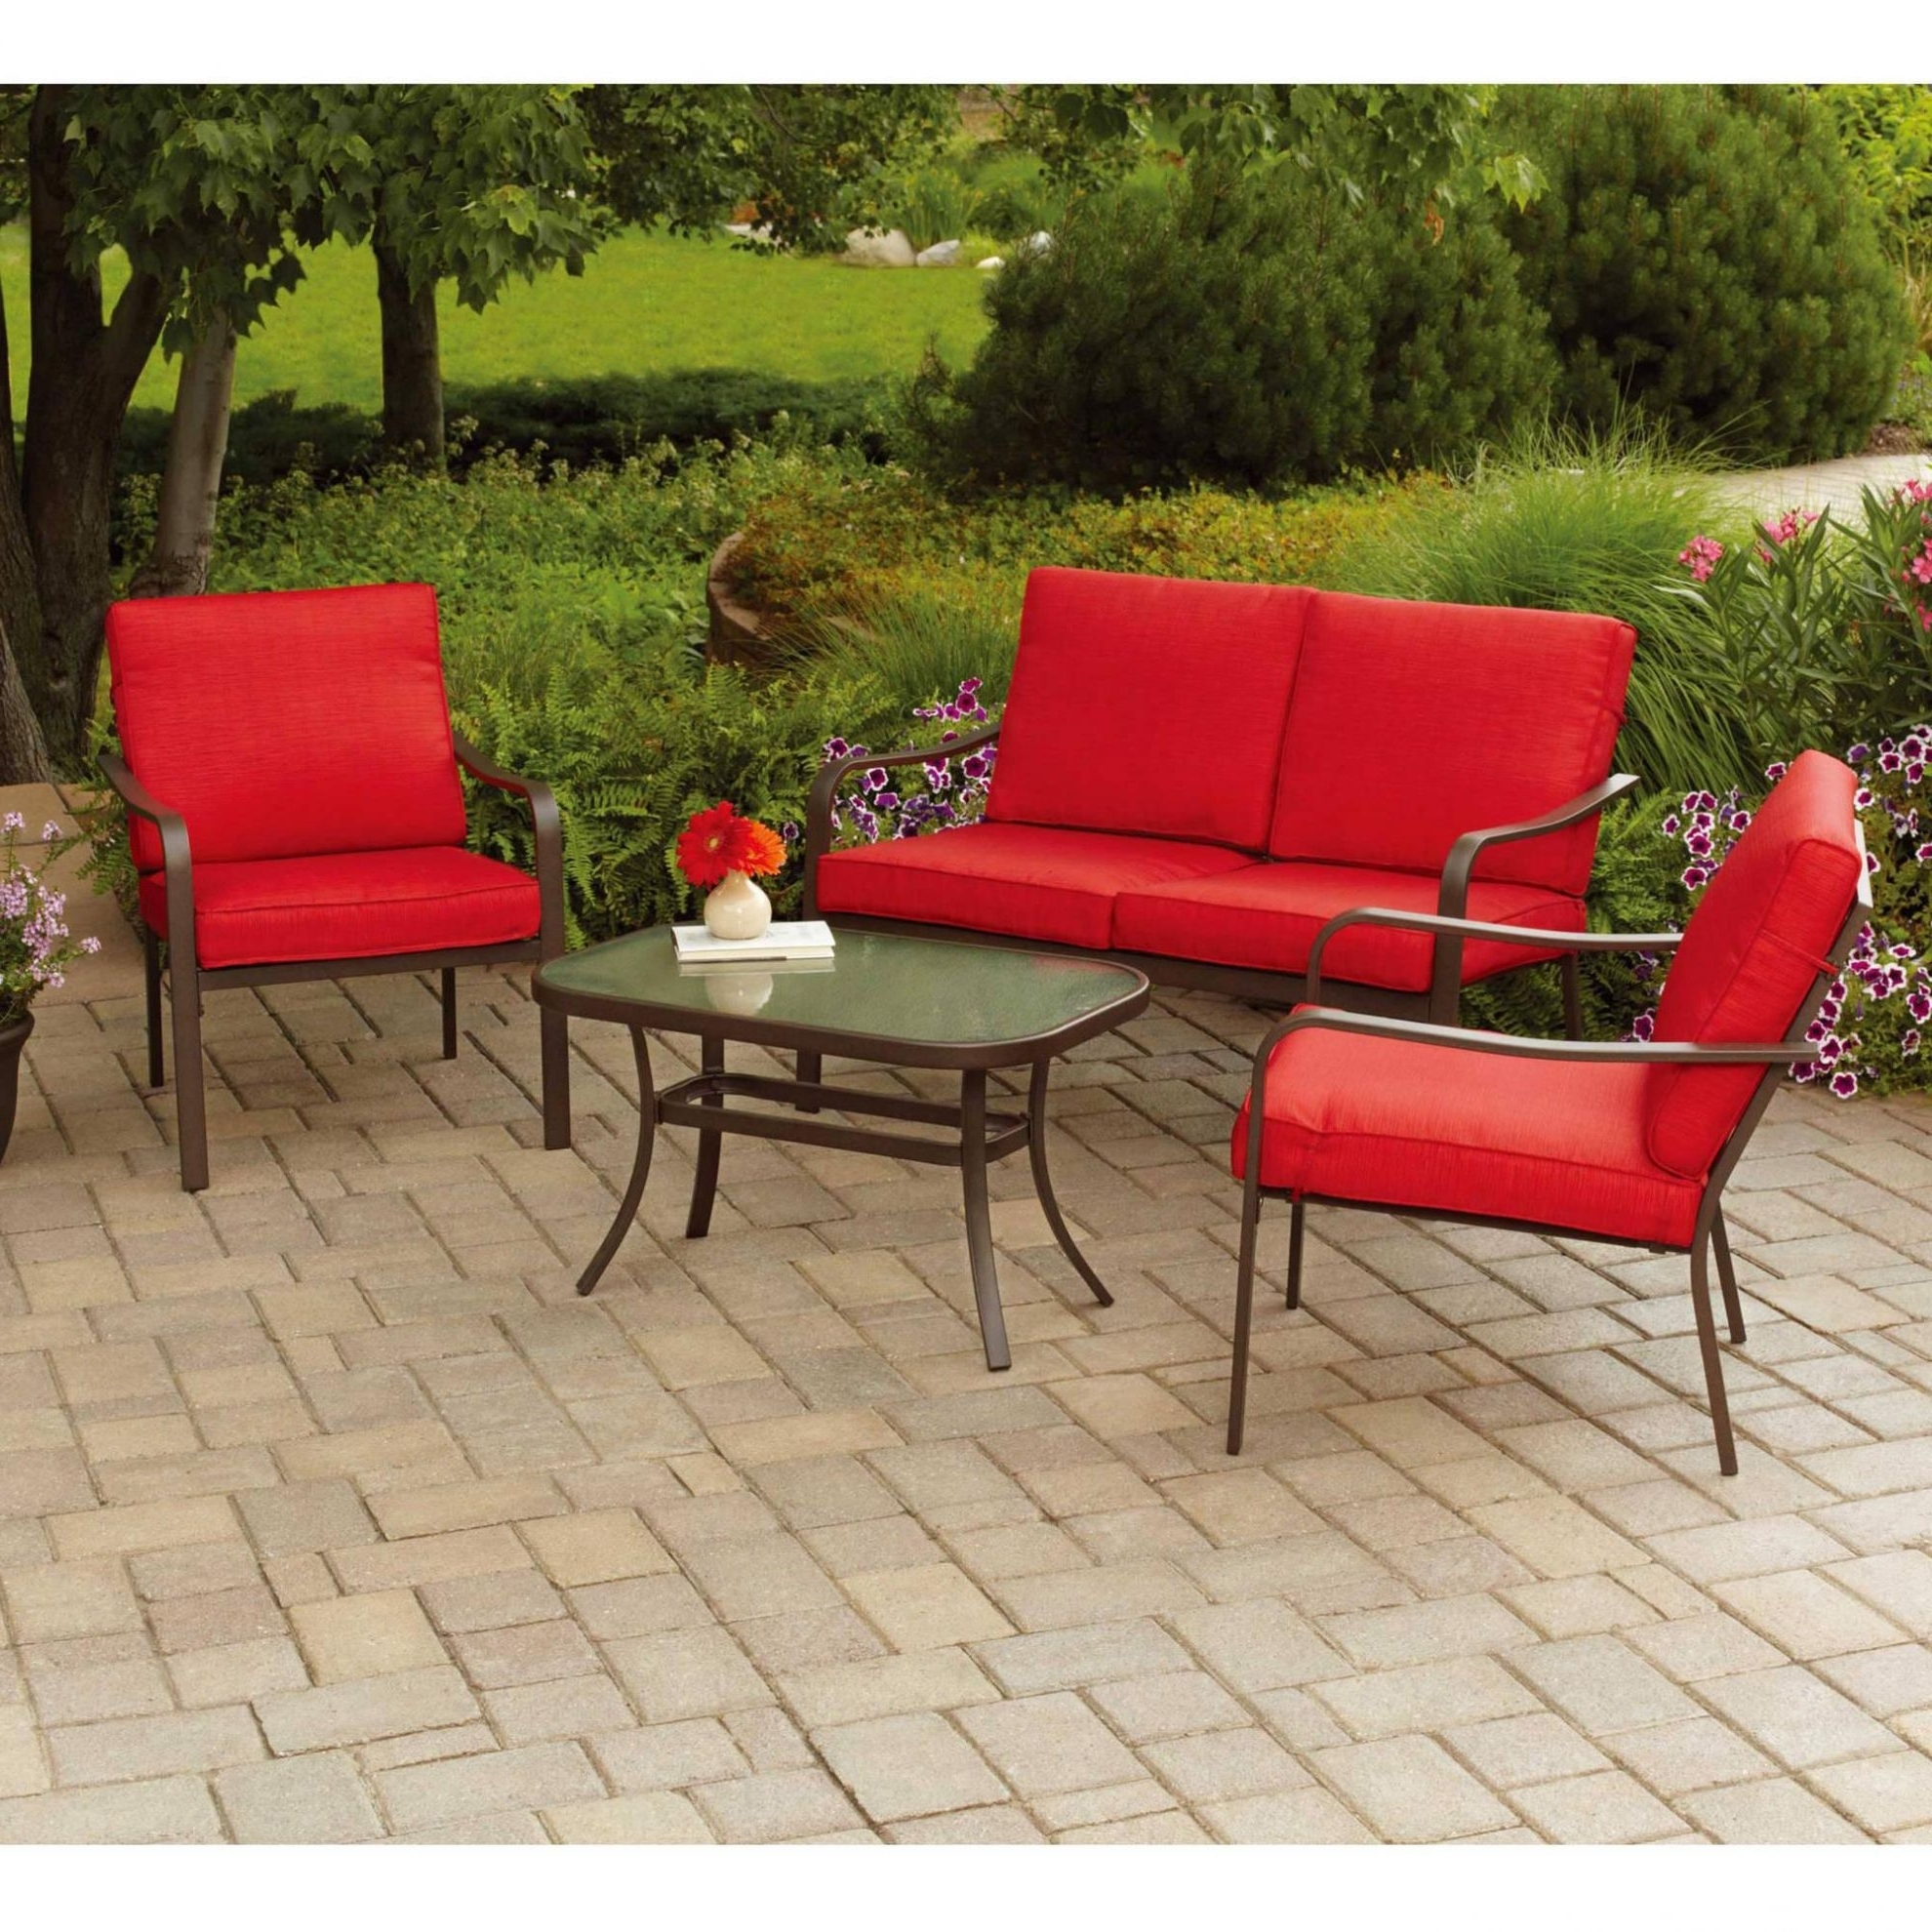 Iron Patio Conversation Sets Inside Most Recent Good Metal Patio Furniture Clearance Photo Gallery #6 Wicker Patio (View 6 of 15)